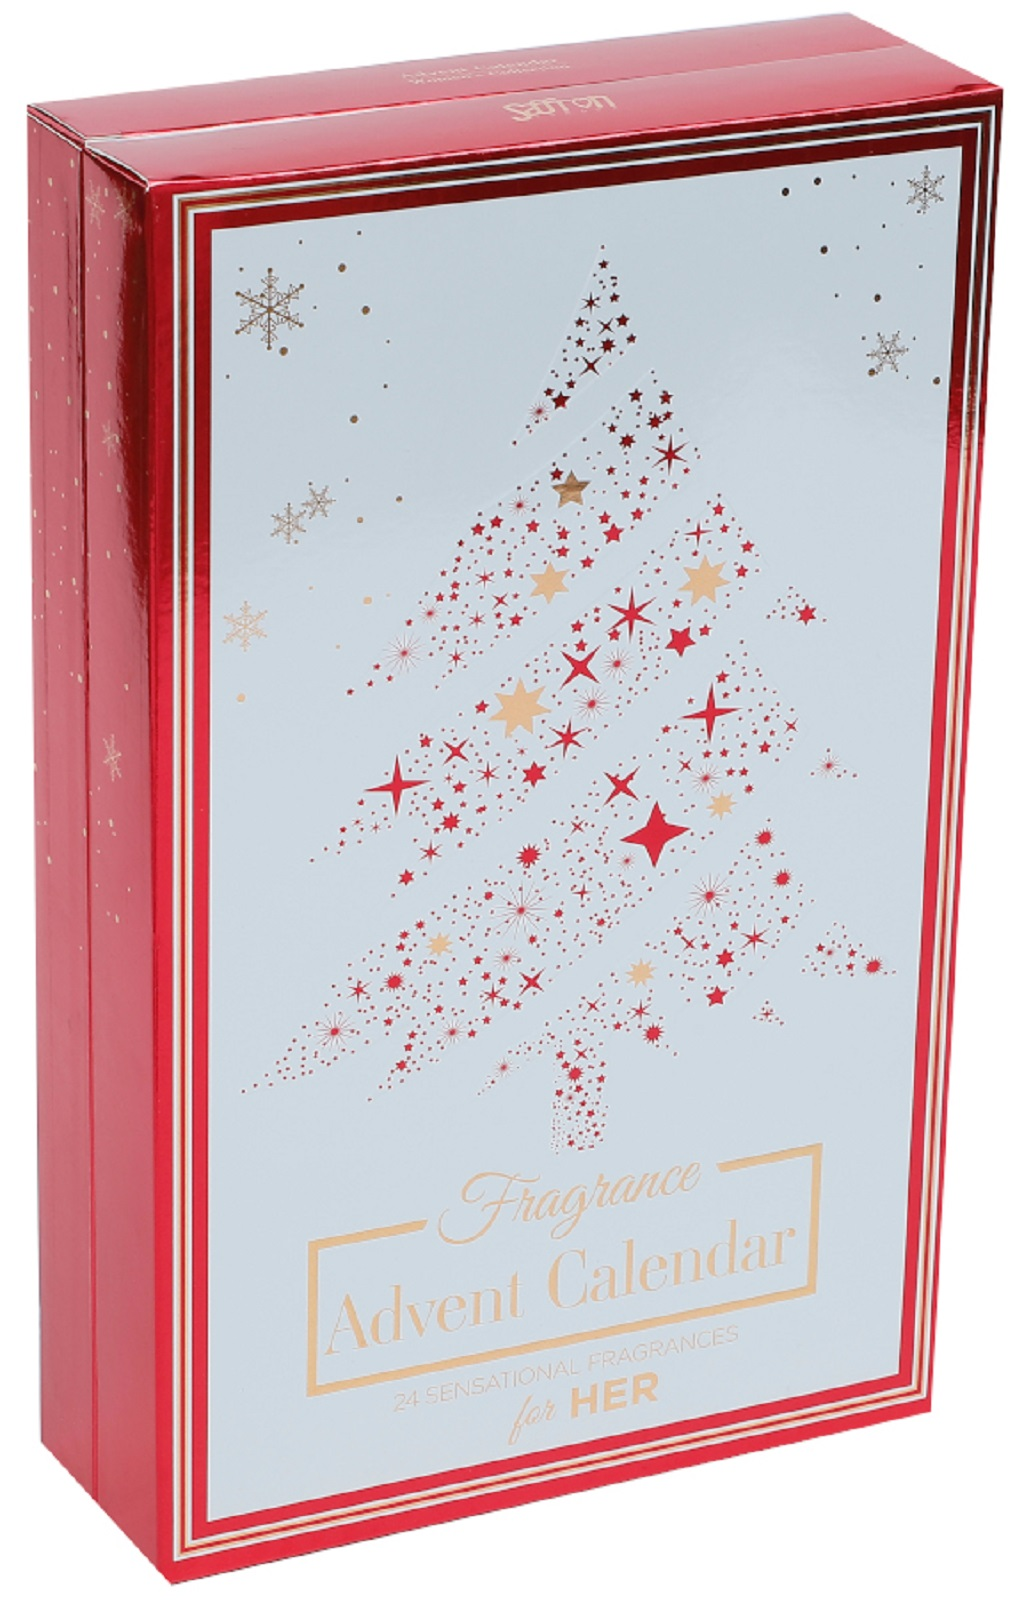 Saffron Cosmetics | 24 Day Fragrance Advent Calendar For Women